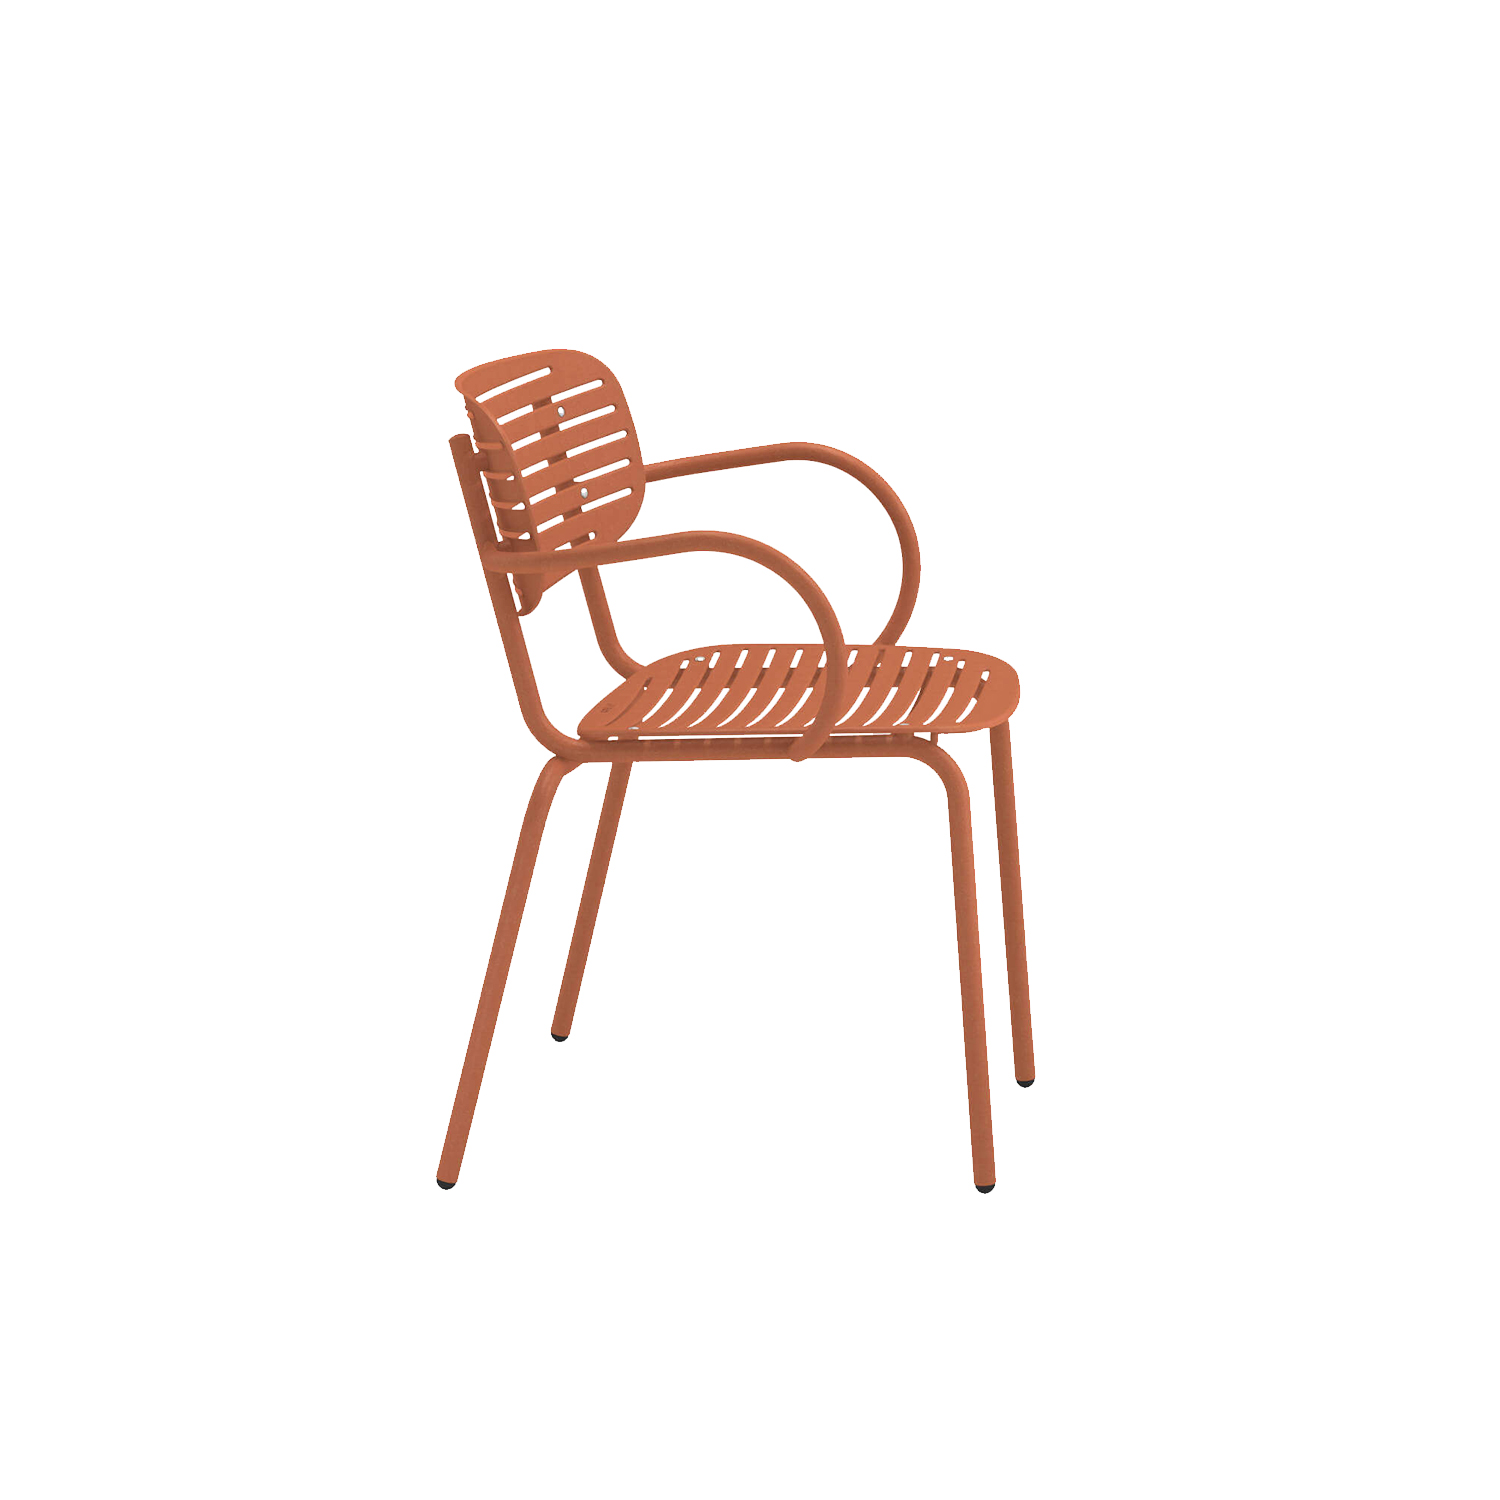 Mom Armchair - Set of 4 - <p>Mom is a brightly coloured collection of steel chairs in two versions, a chair and an armchair. The graphic effect of the elegant, sculptural, metal backrest lightens the soft, snug shapes. The solid colour palette gives this collection a young, fresh and ironic touch.</p>